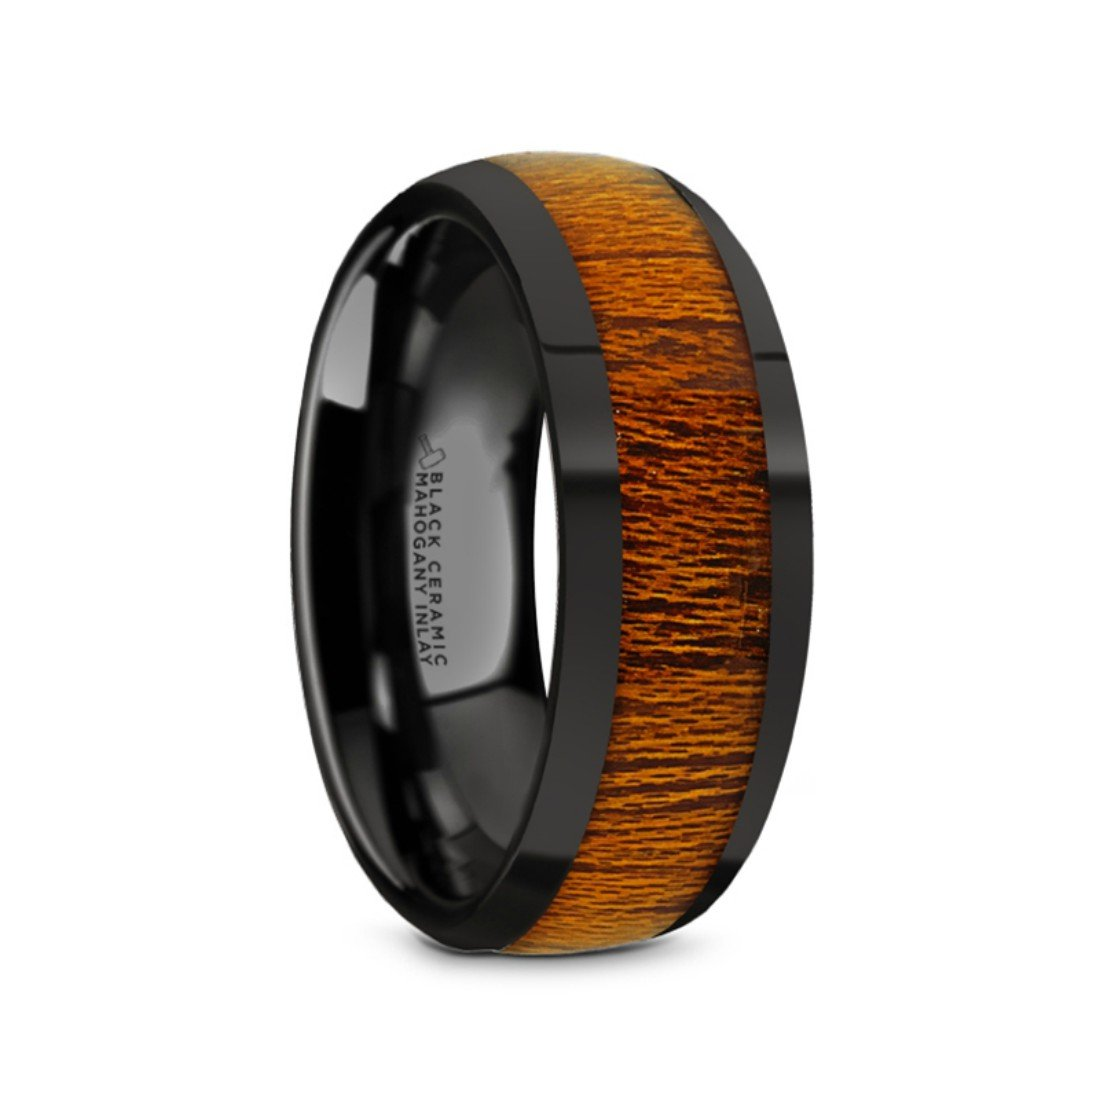 MABINI Black Ceramic with Rich Genuine Mahogany Wood Inlay Men's Domed Wedding Band with Polished Finish - 8mm from Thorsten by Roy Rose Jewelry by Thorsten (Image #1)